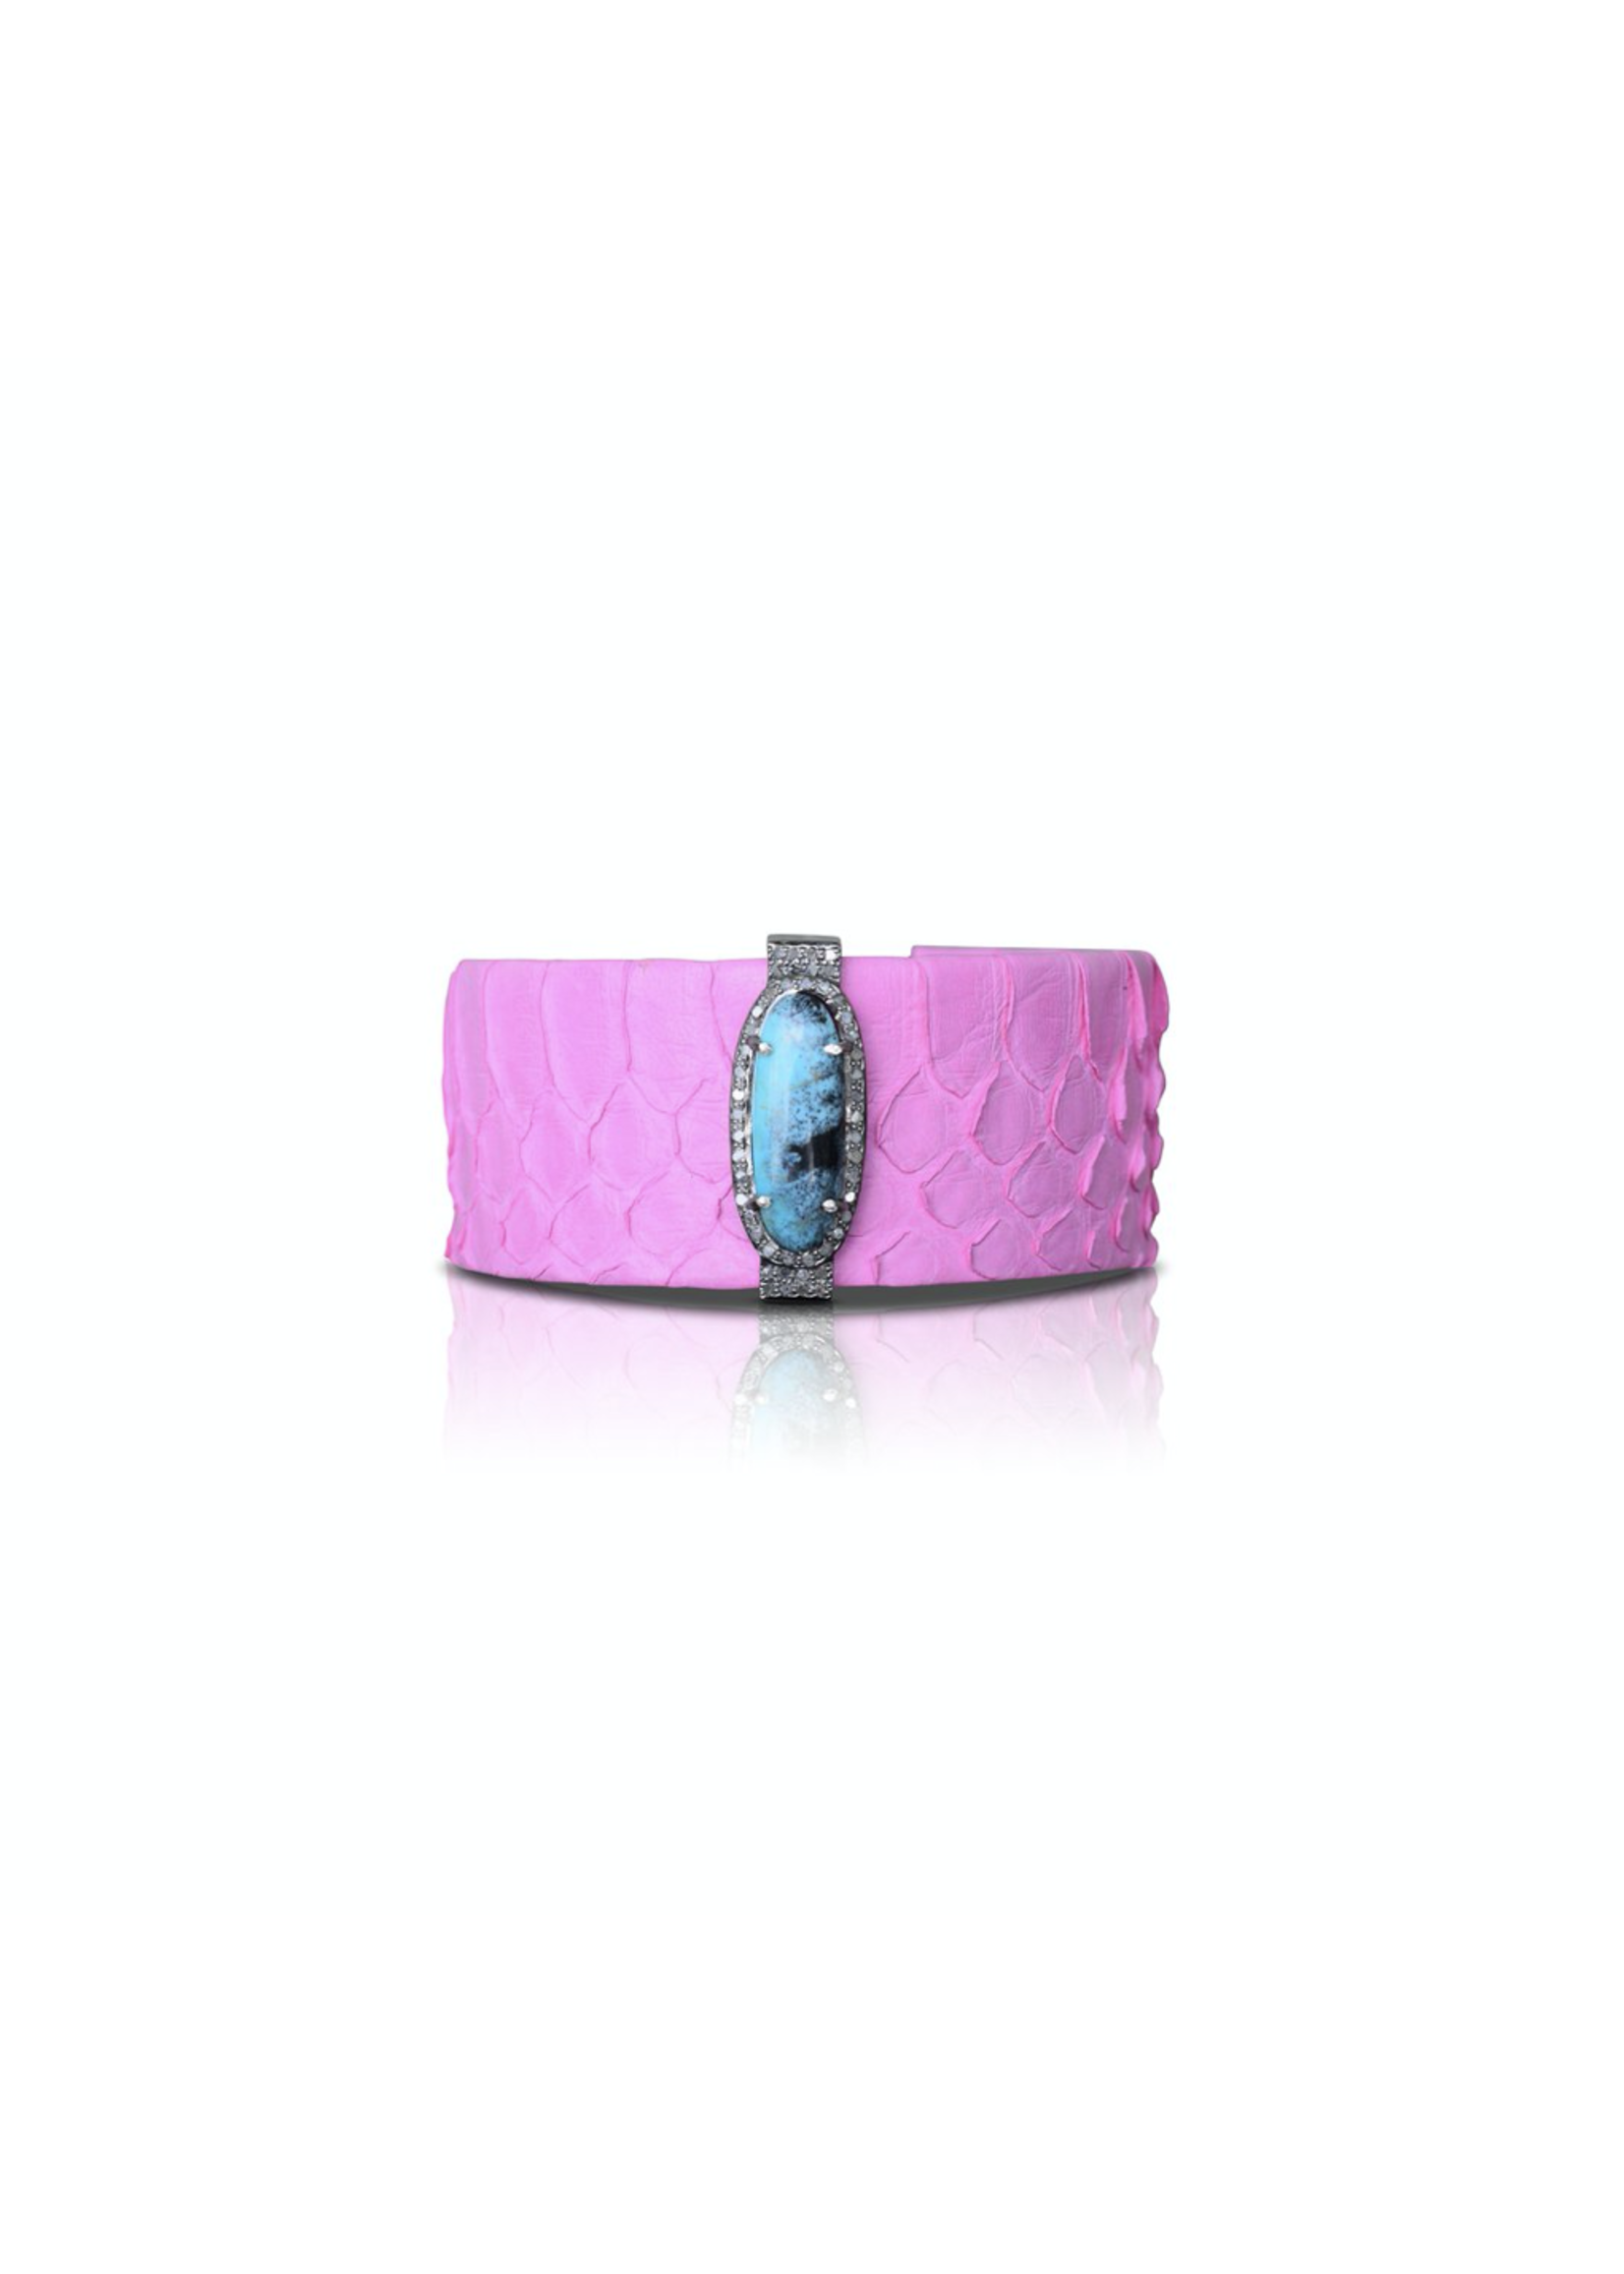 S. Carter Designs Pink Turquoise Python Cuff